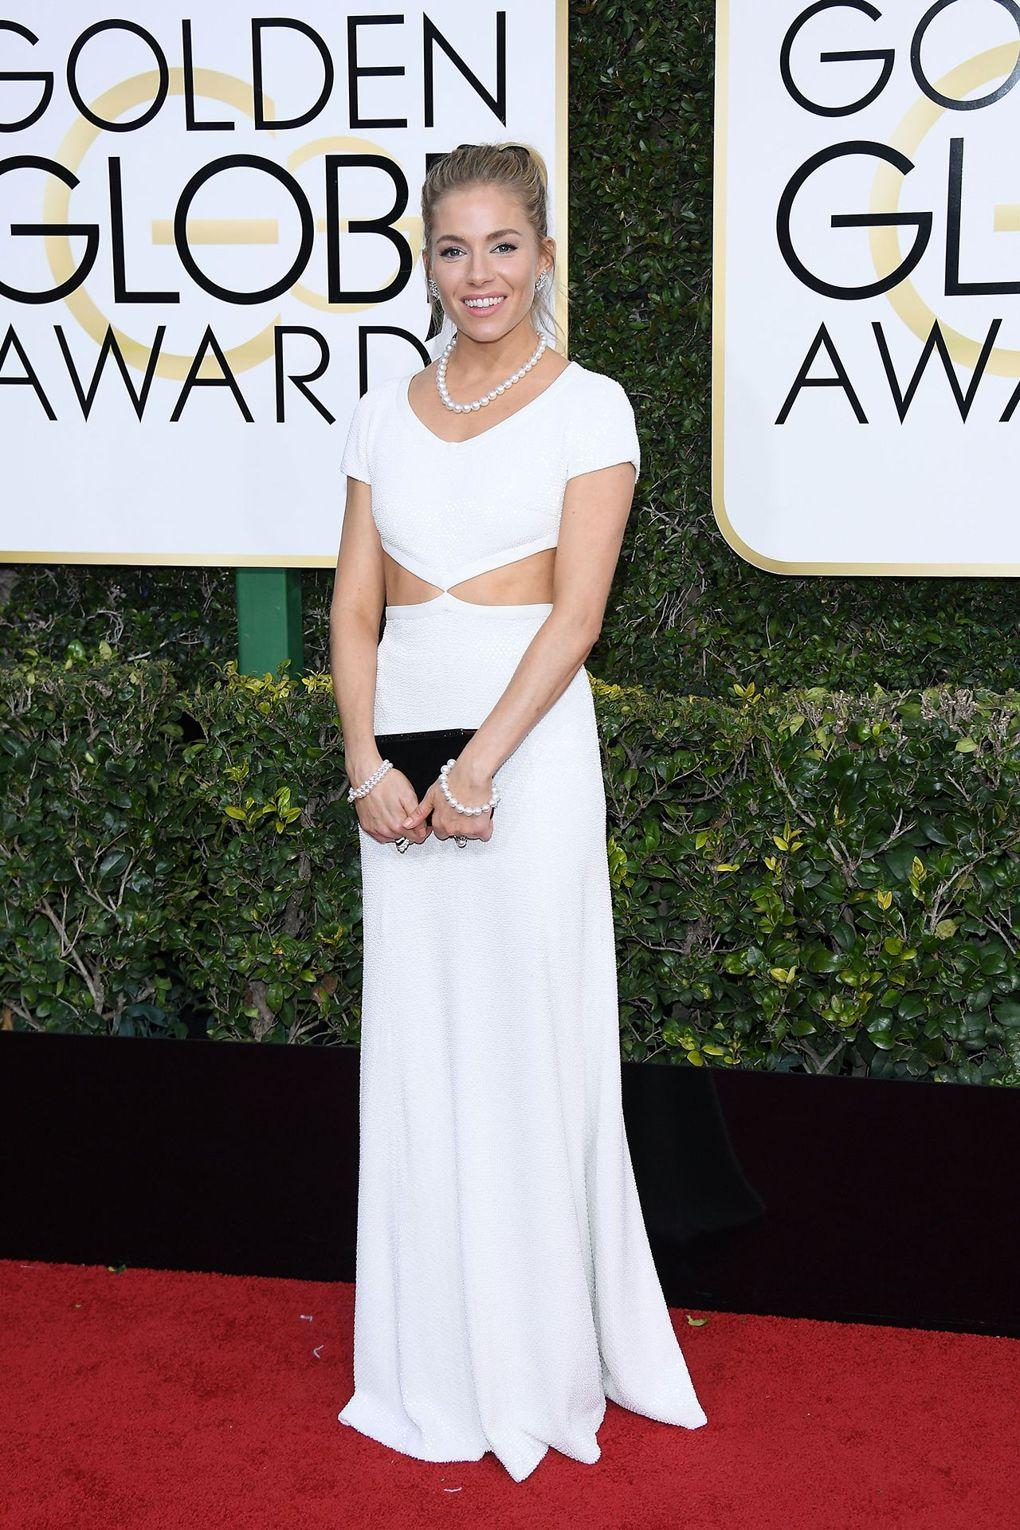 The Best Dressed from Golden Globe Awards - Sienna Miller